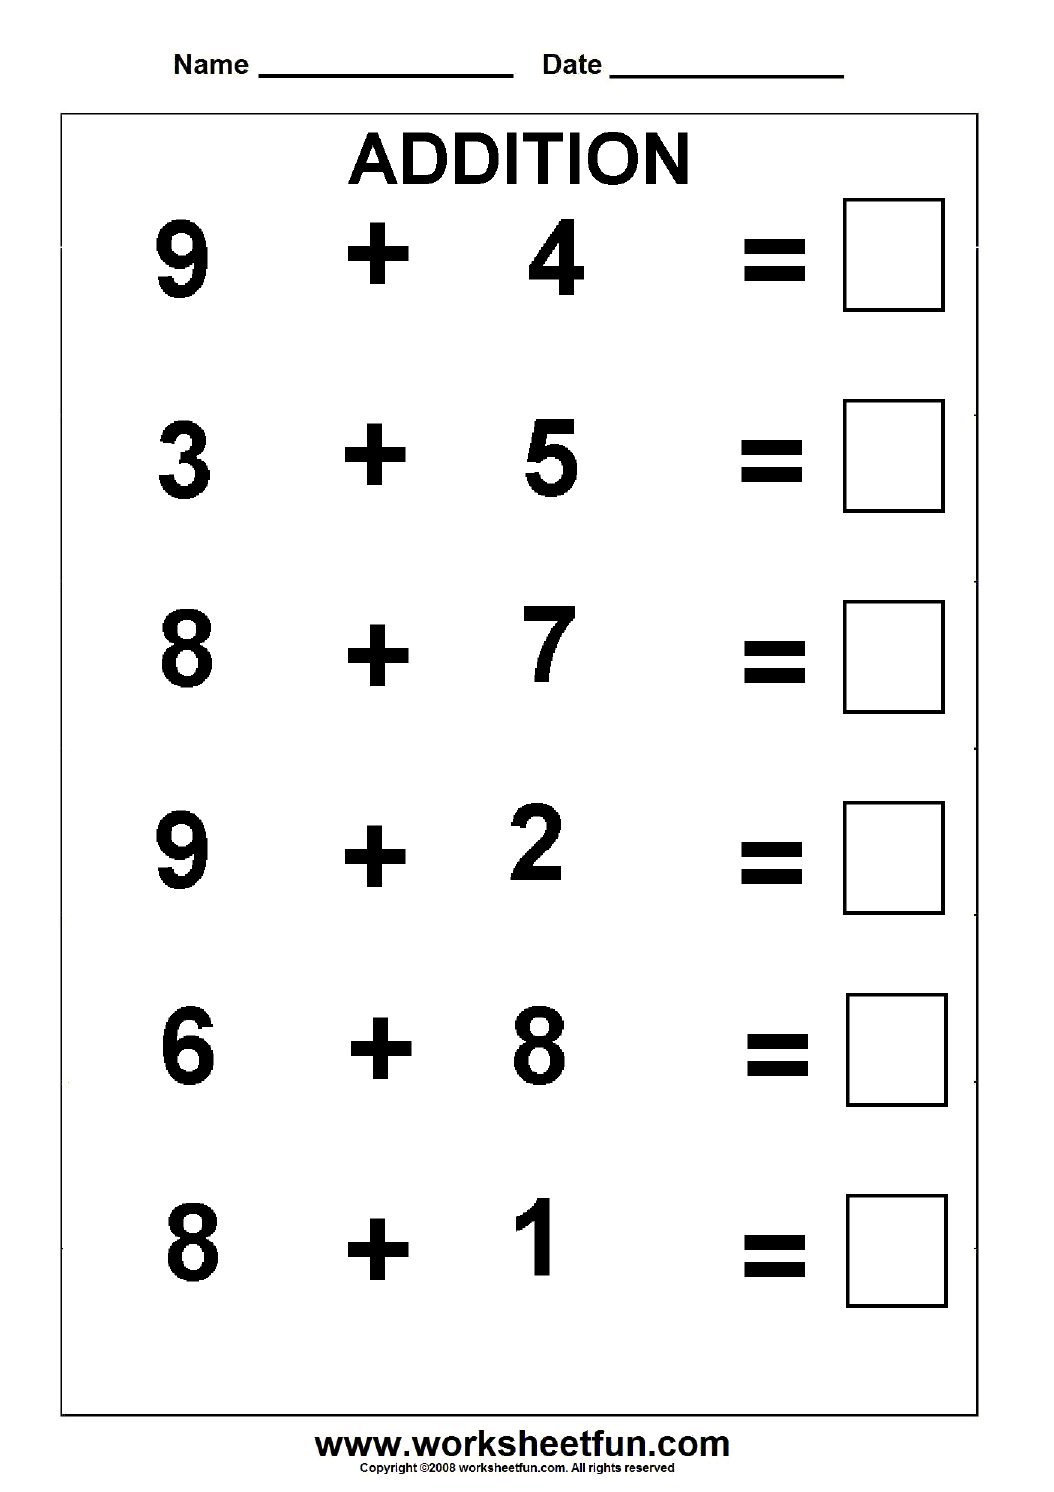 Addition Worksheet By 5